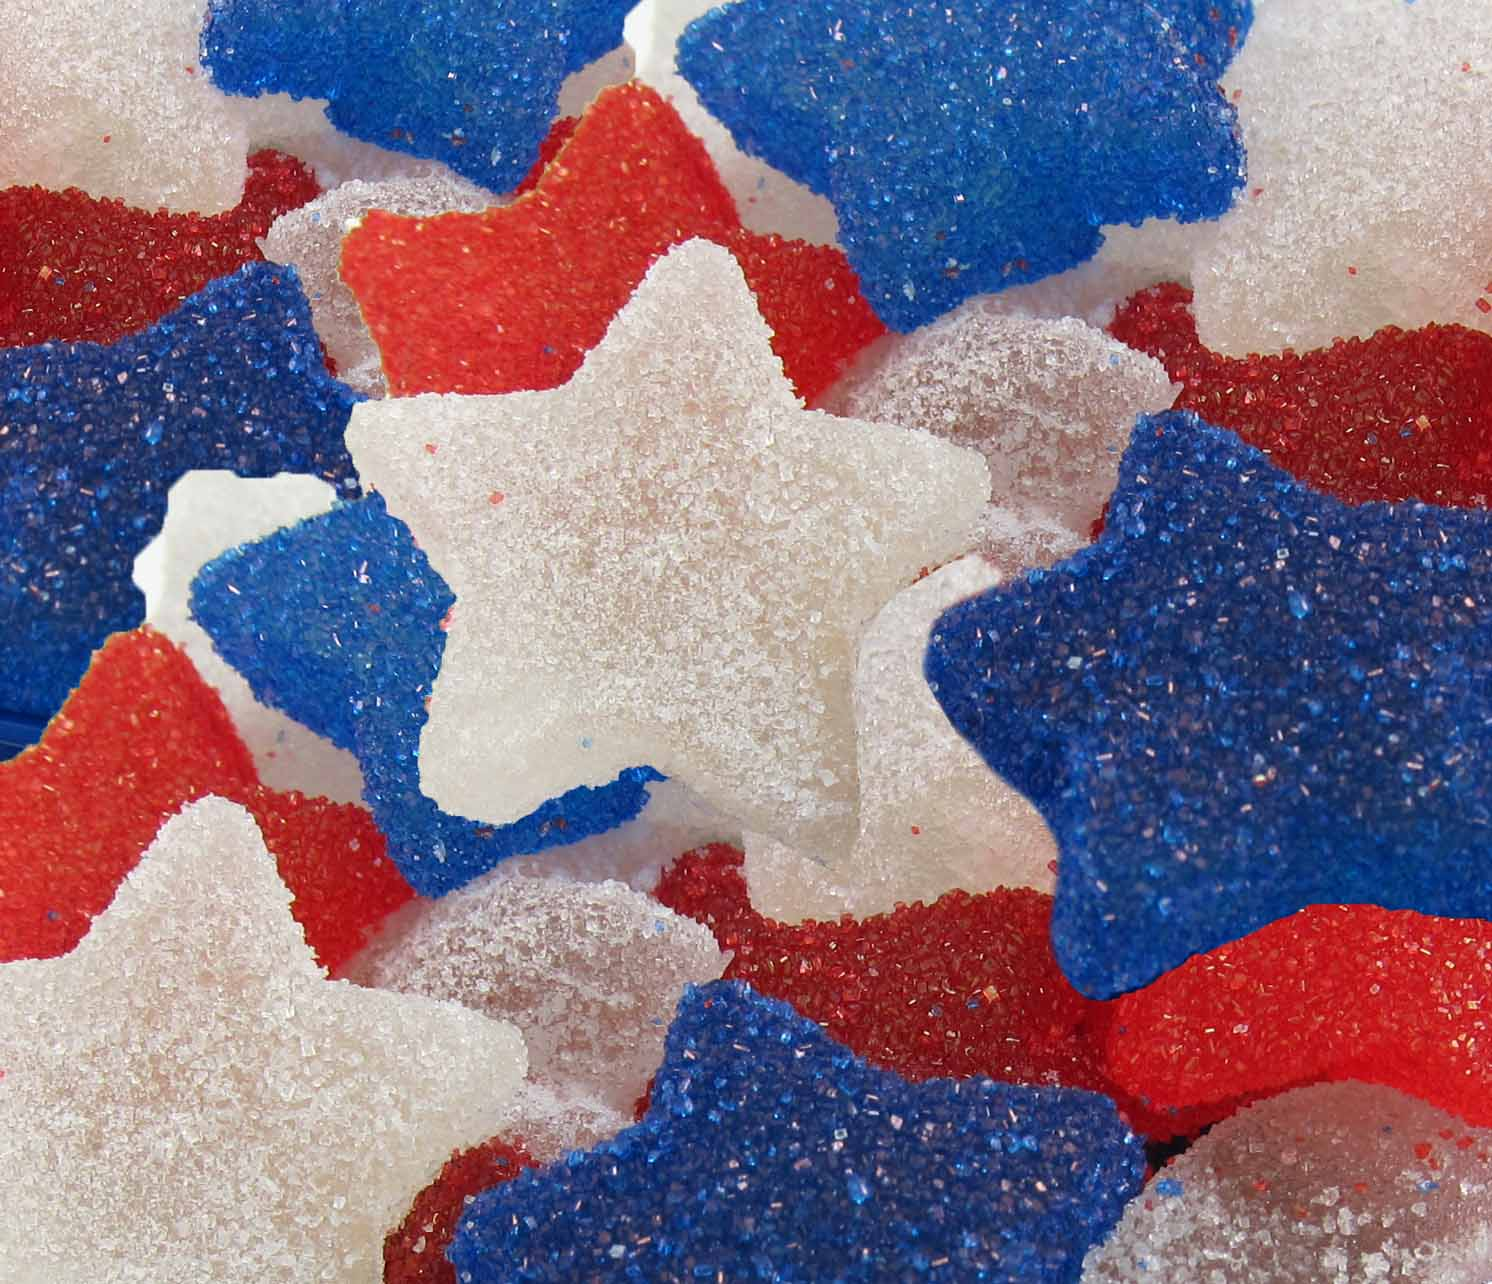 Red, White, and Blue Gumdrops made in your home kitchen ... - photo#12